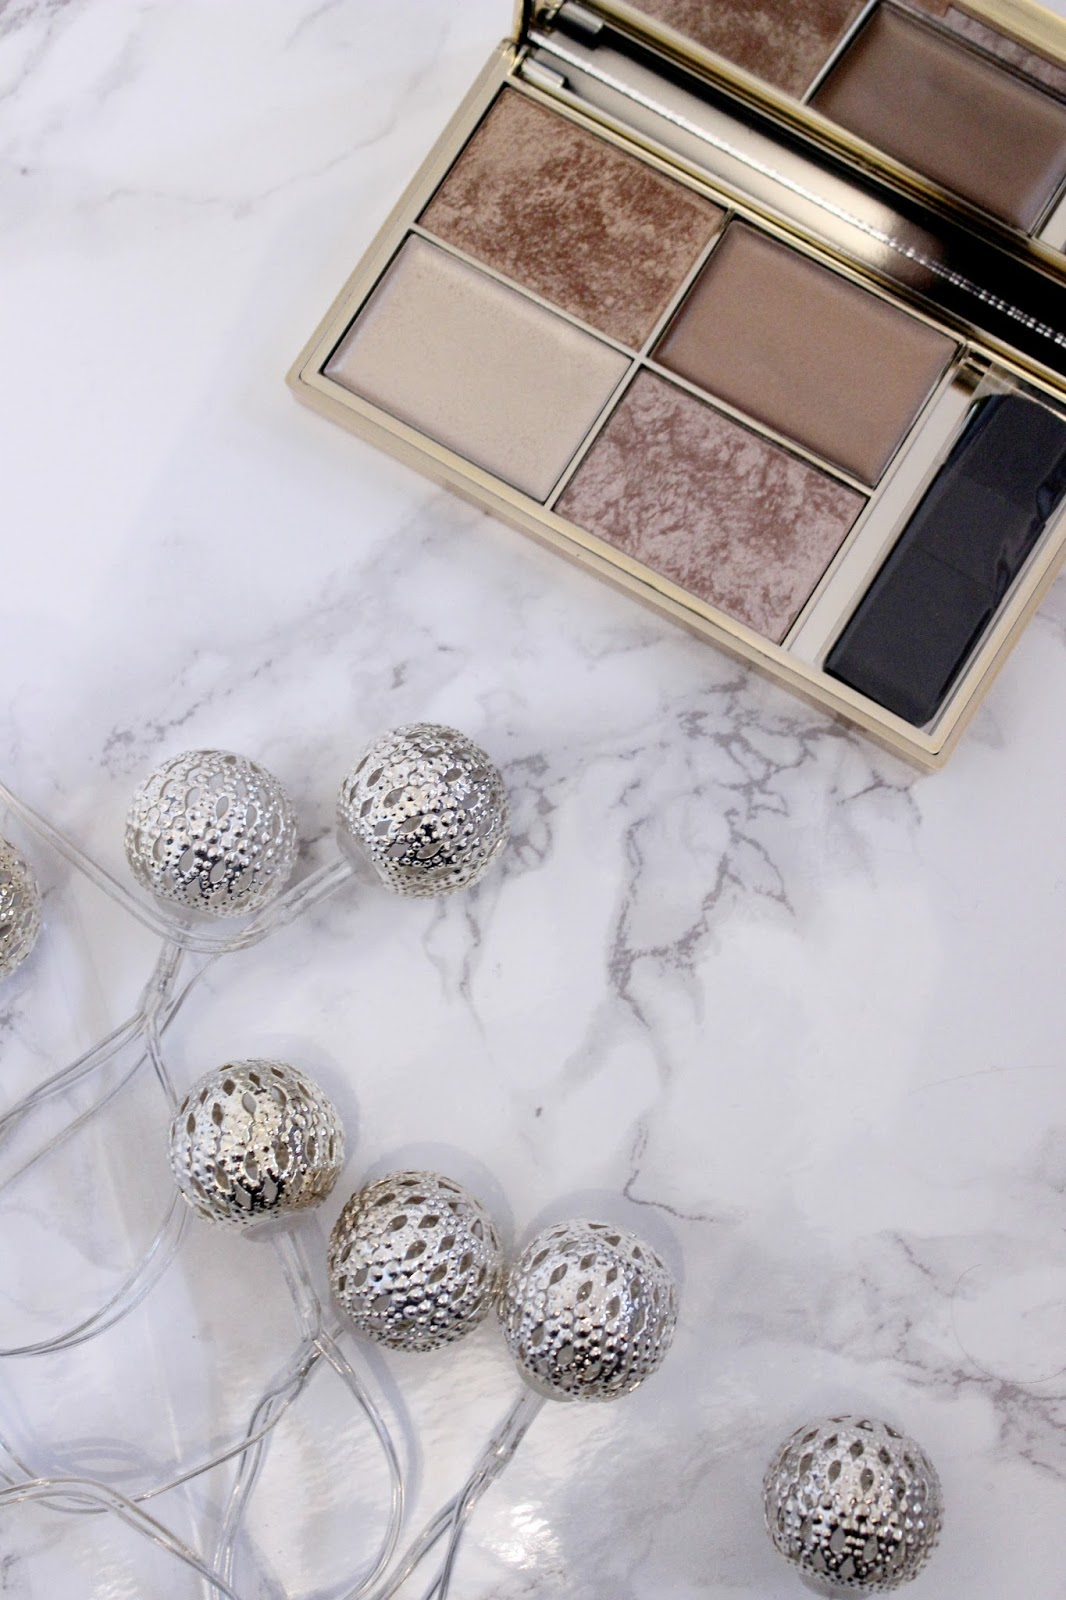 sleek_cleopatra_kiss_highlight_palette_beauty_blog_review_marble_flatlay